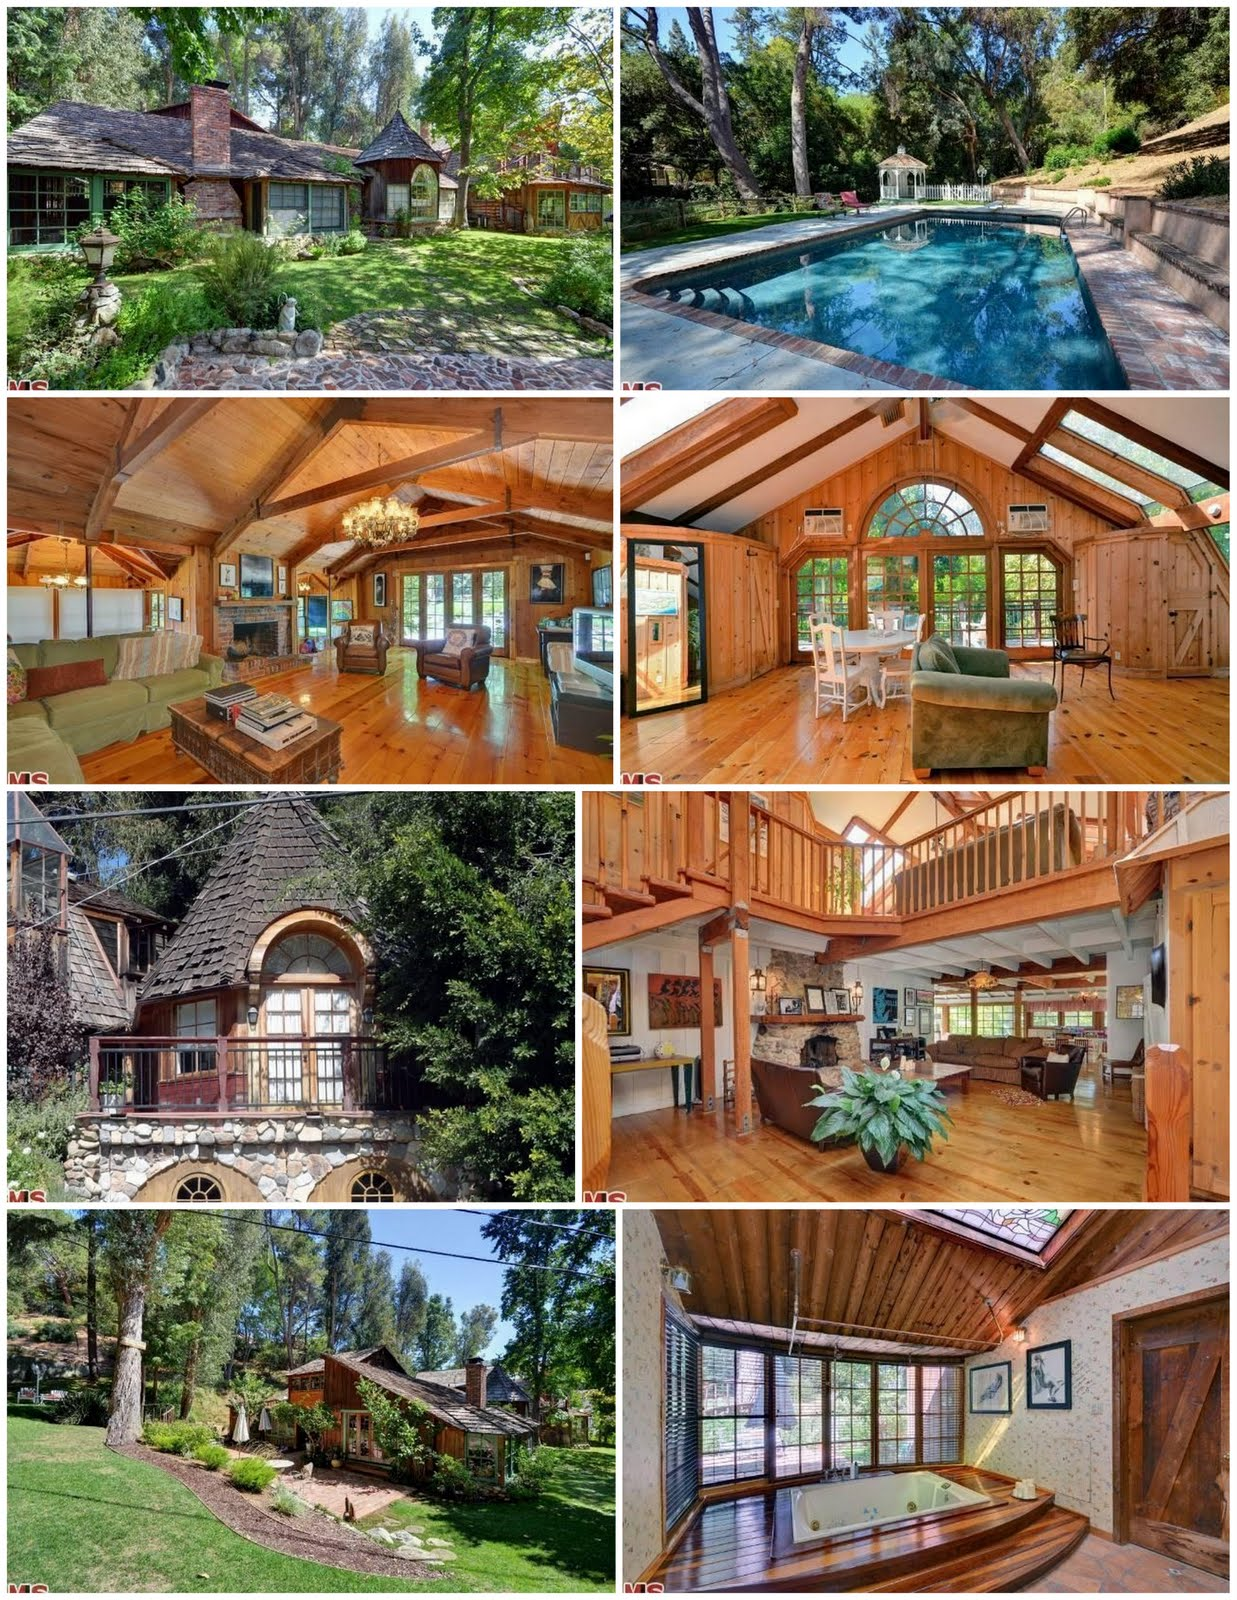 Celebrity Real Estate: Former Jane Fonda House Now Owned by Ethan ...